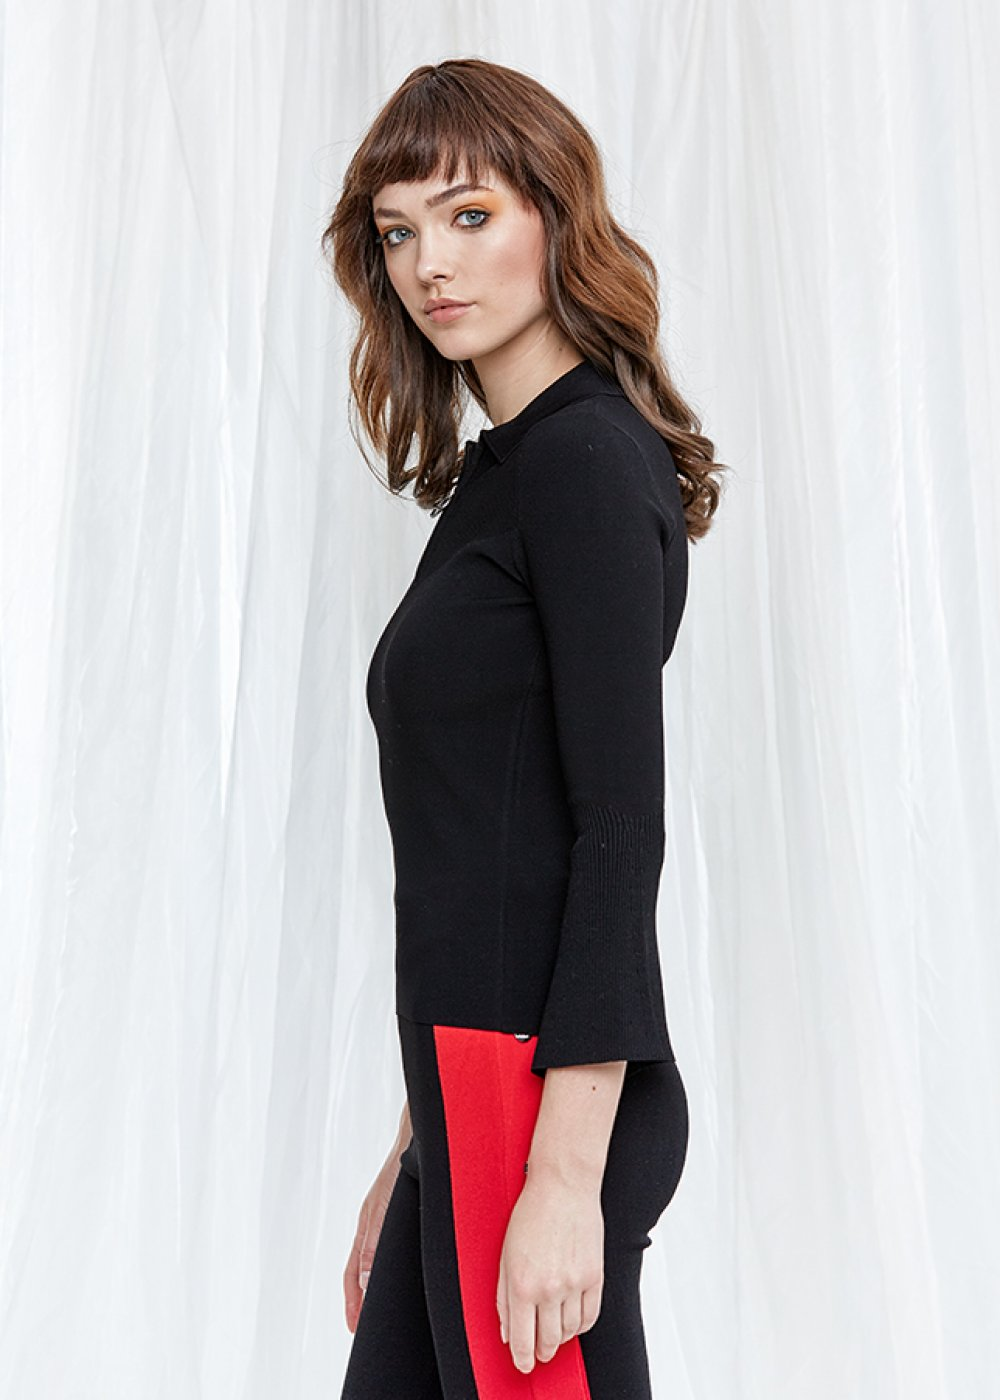 Bell Sleeve Black Knit Top